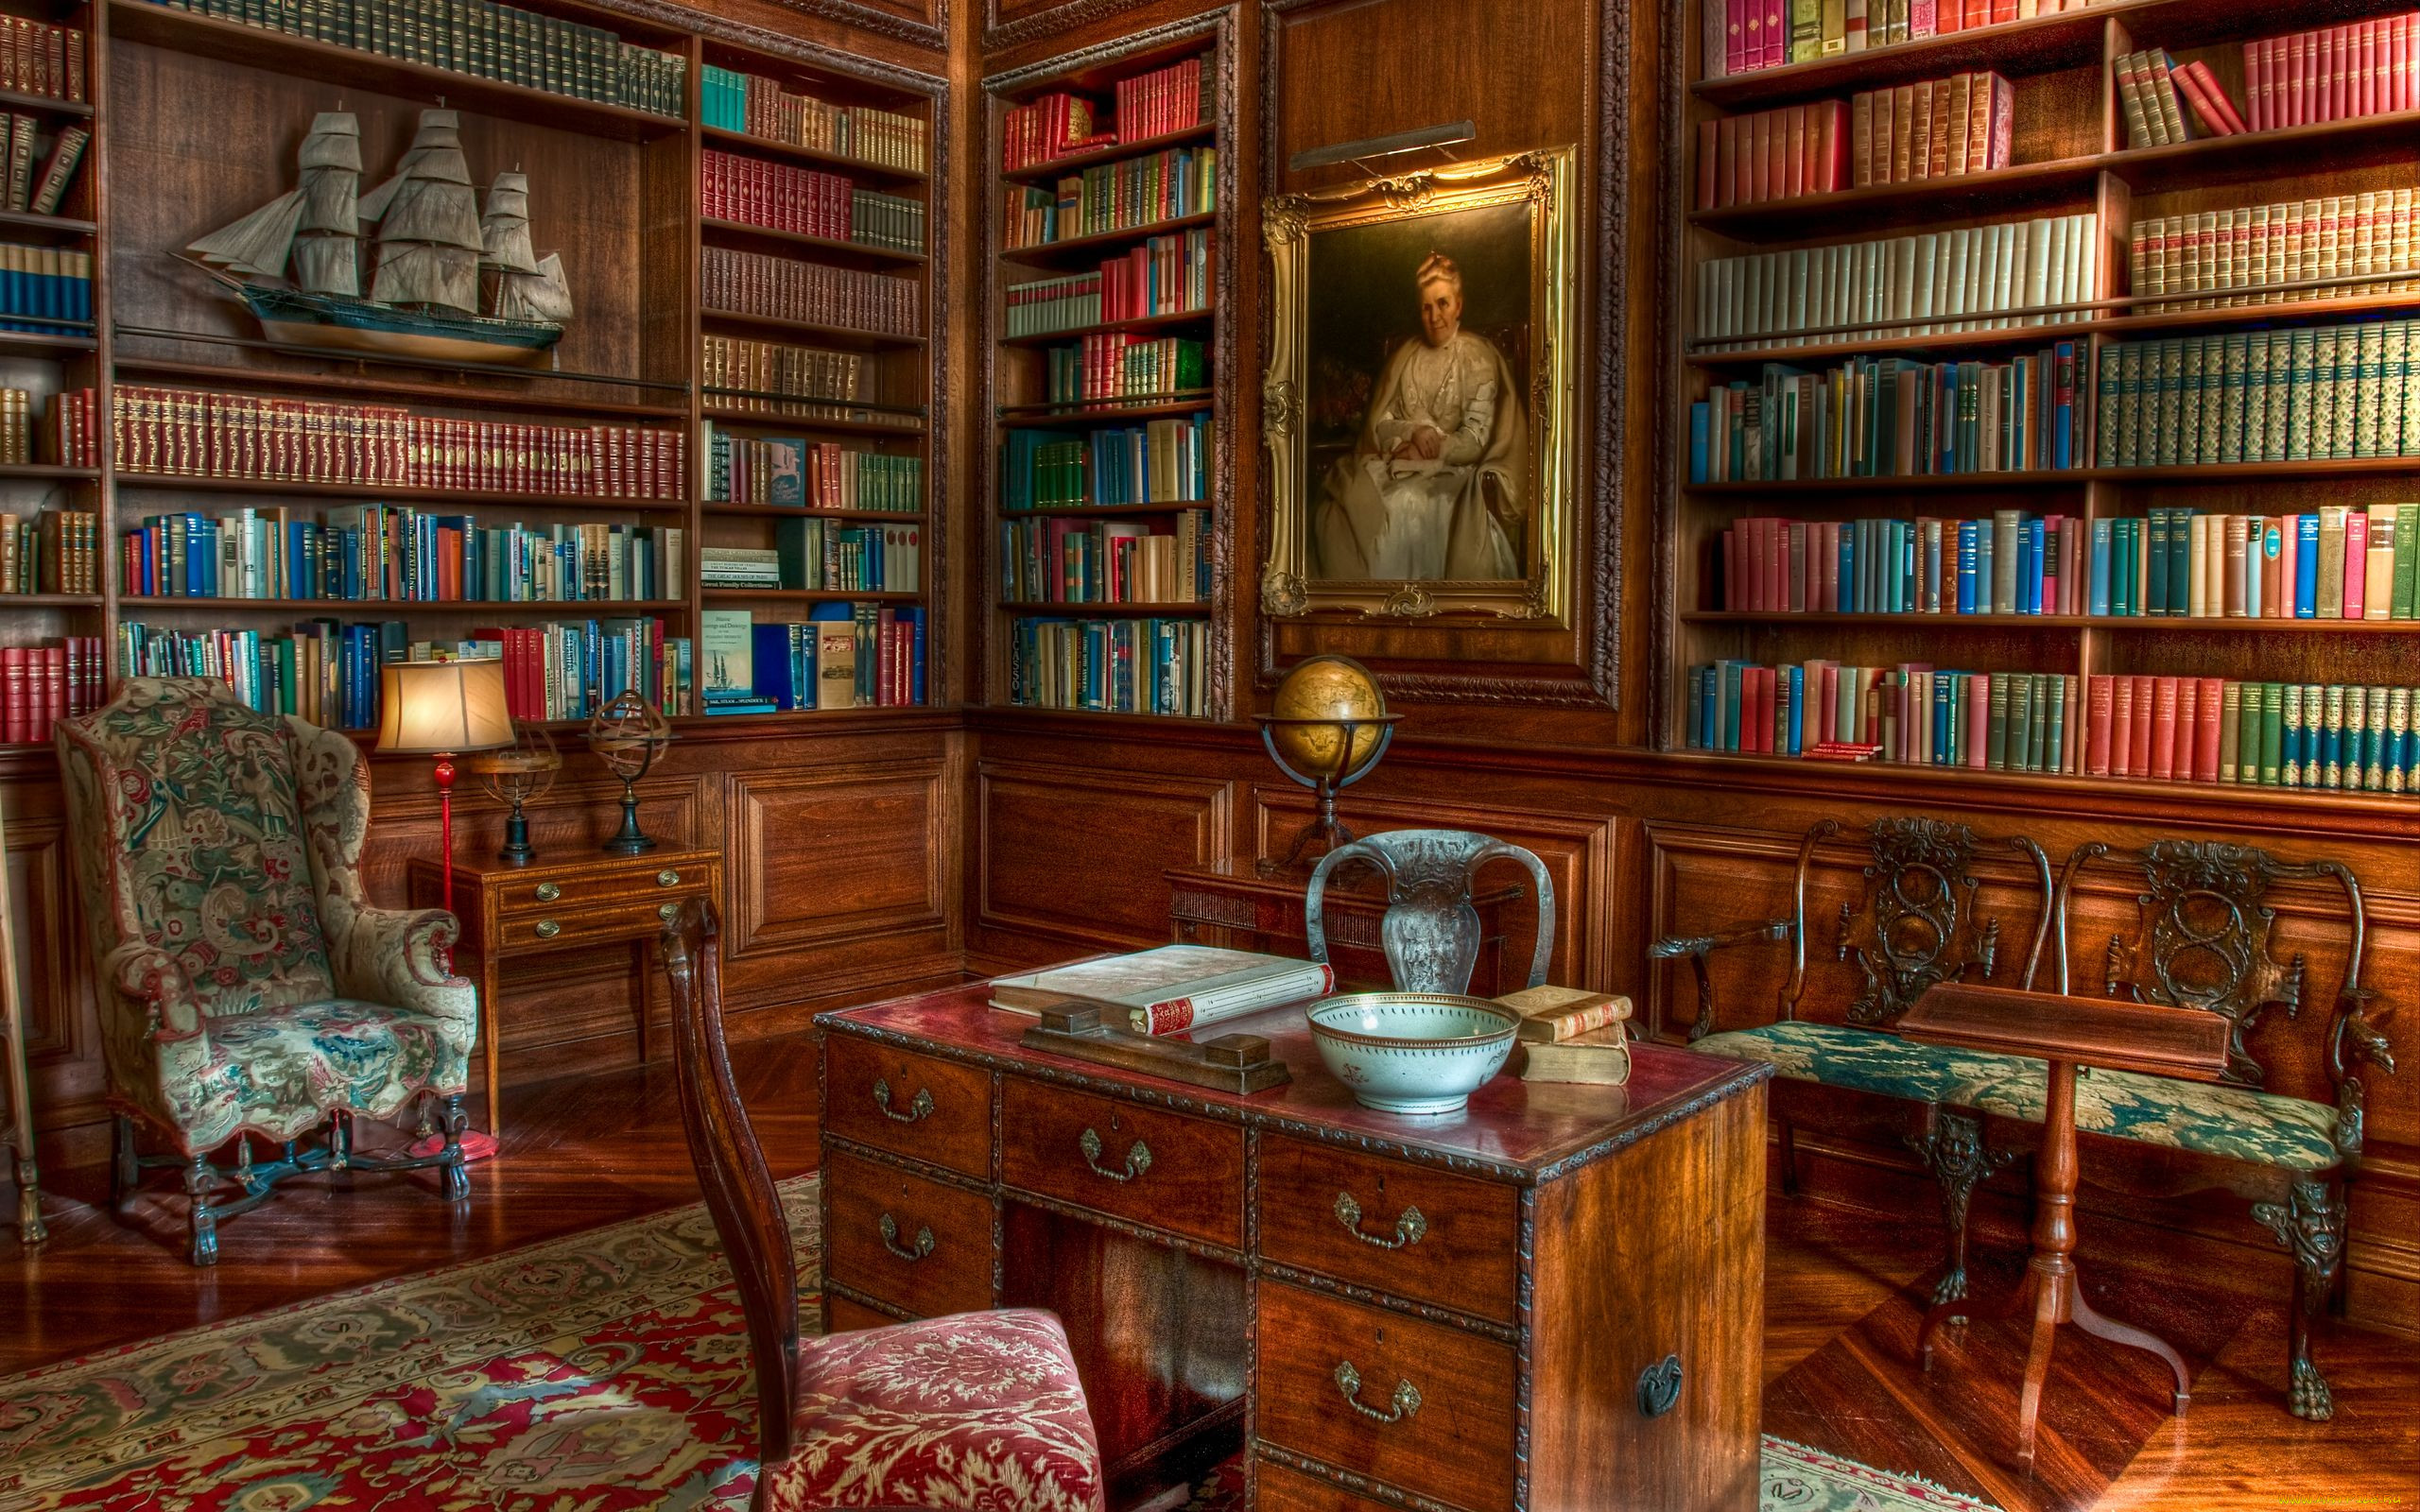 Interior houses with libraries hd wallpaper beautiful librar.